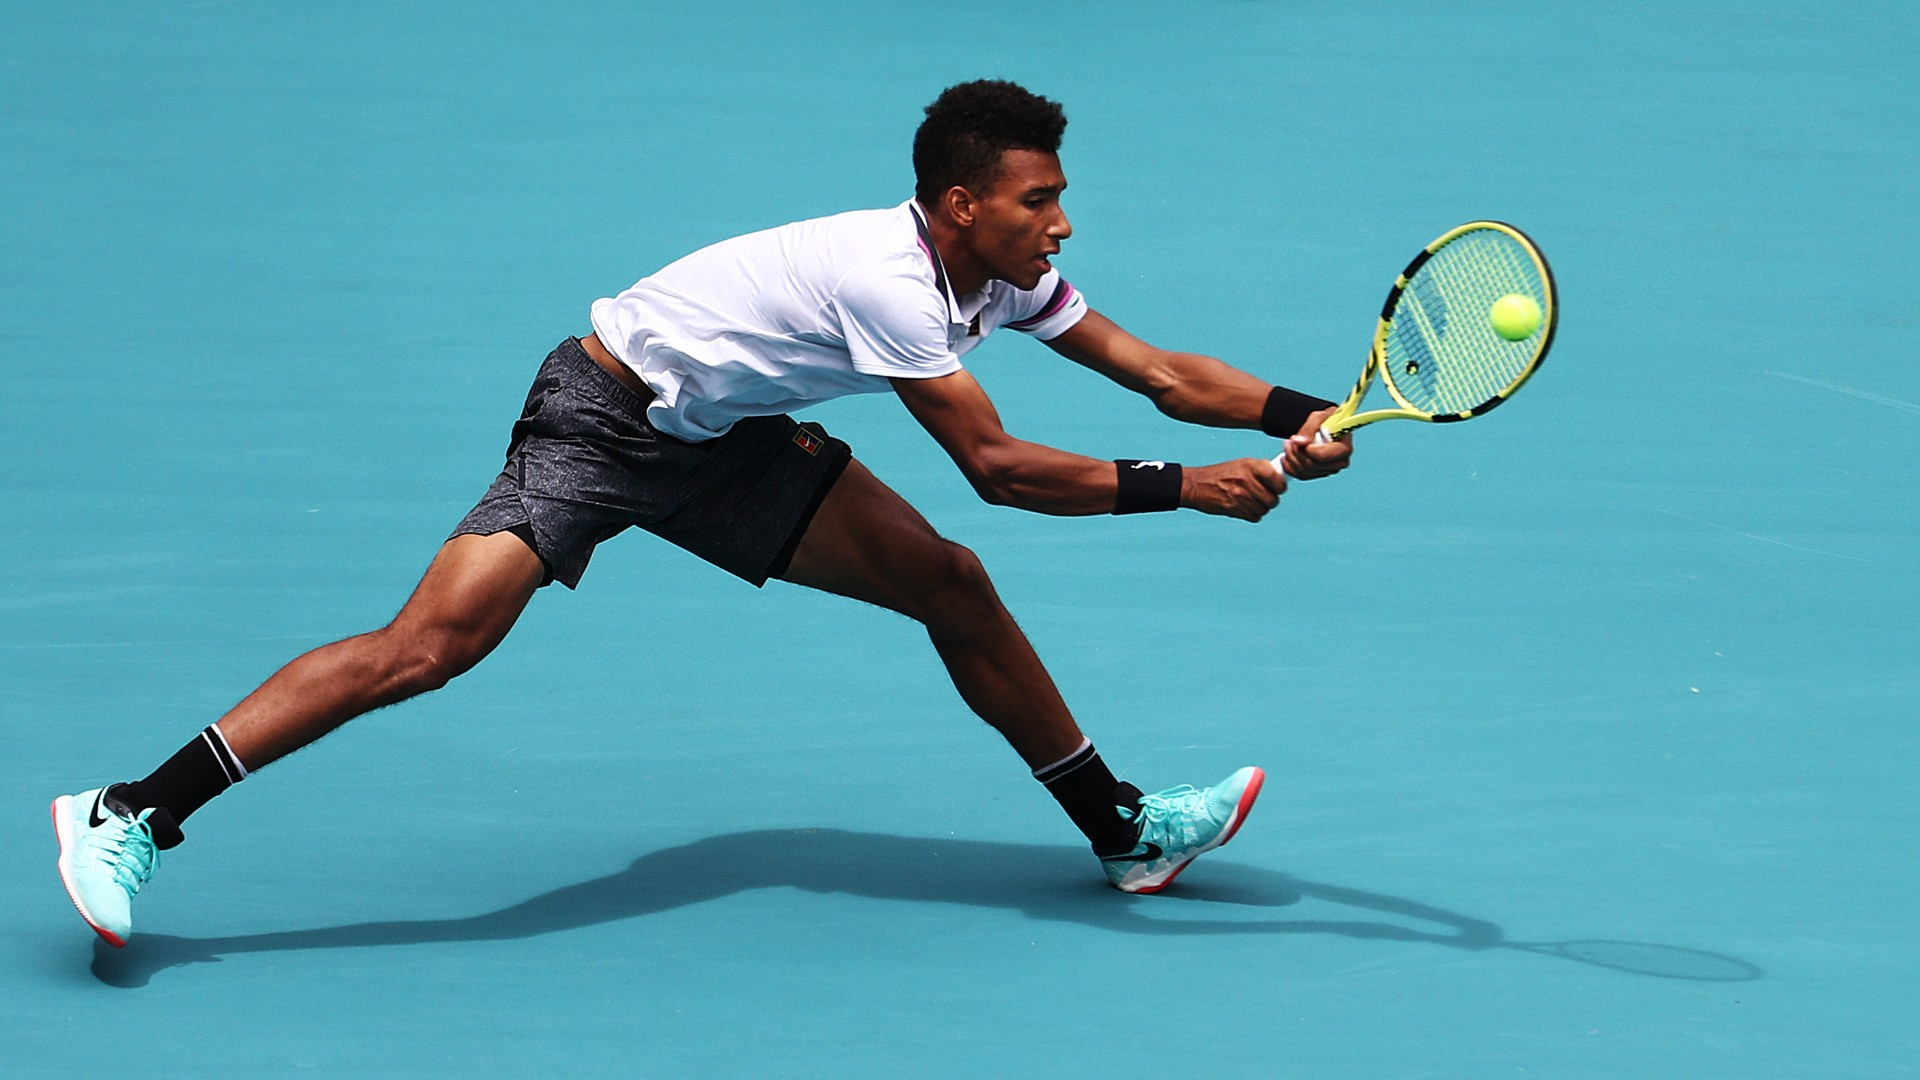 Stuttgart Open 2019: Felix Auger-Aliassime's first tournament win remains elusive